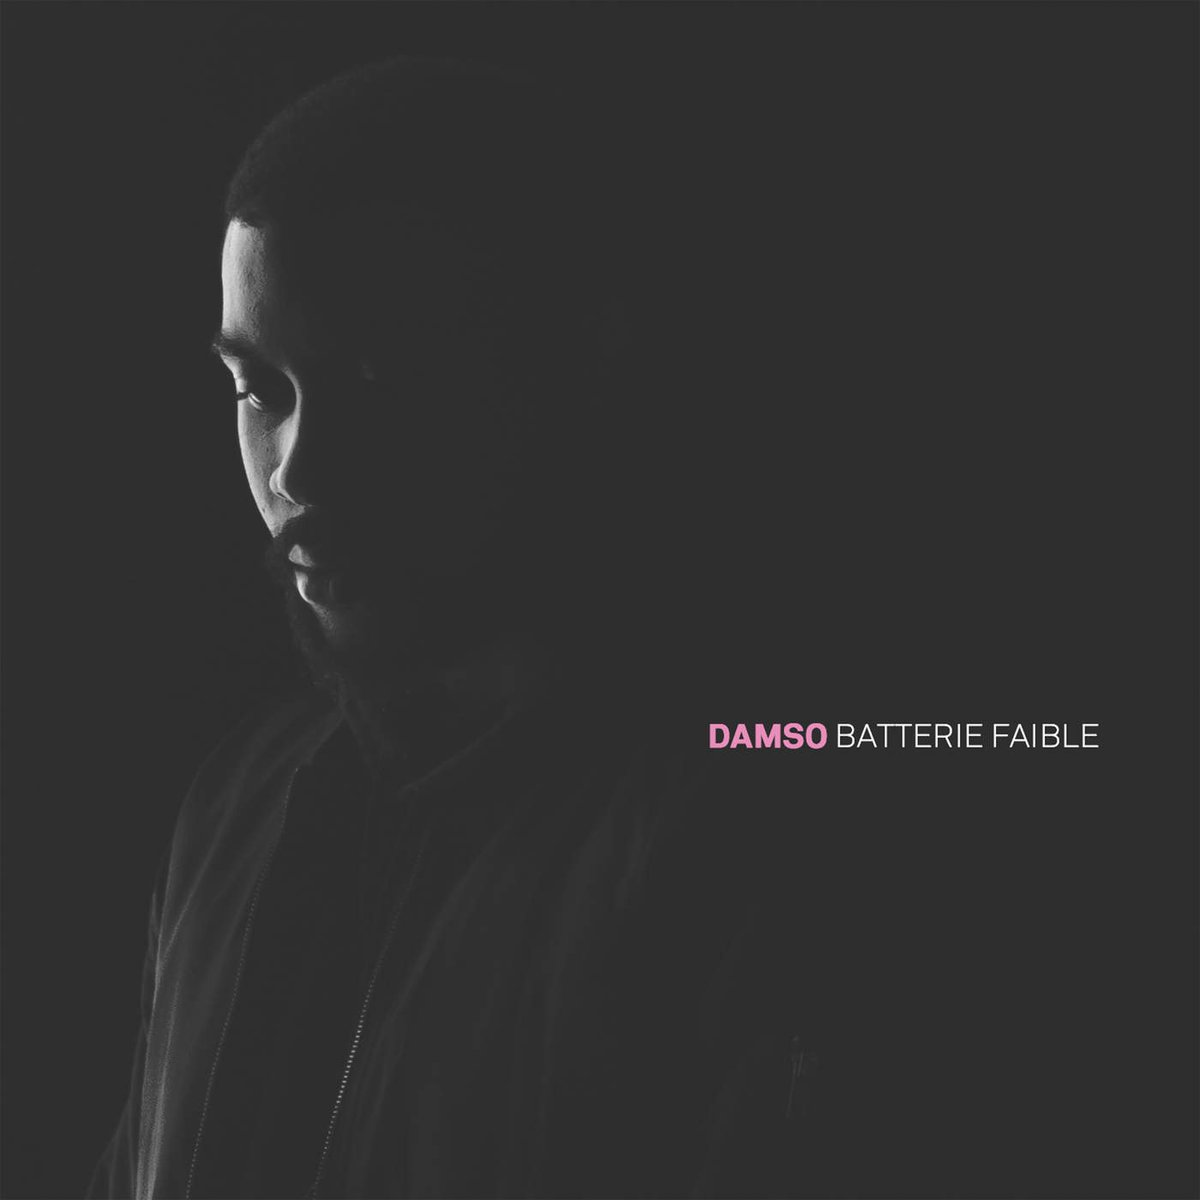 batterie faible damso